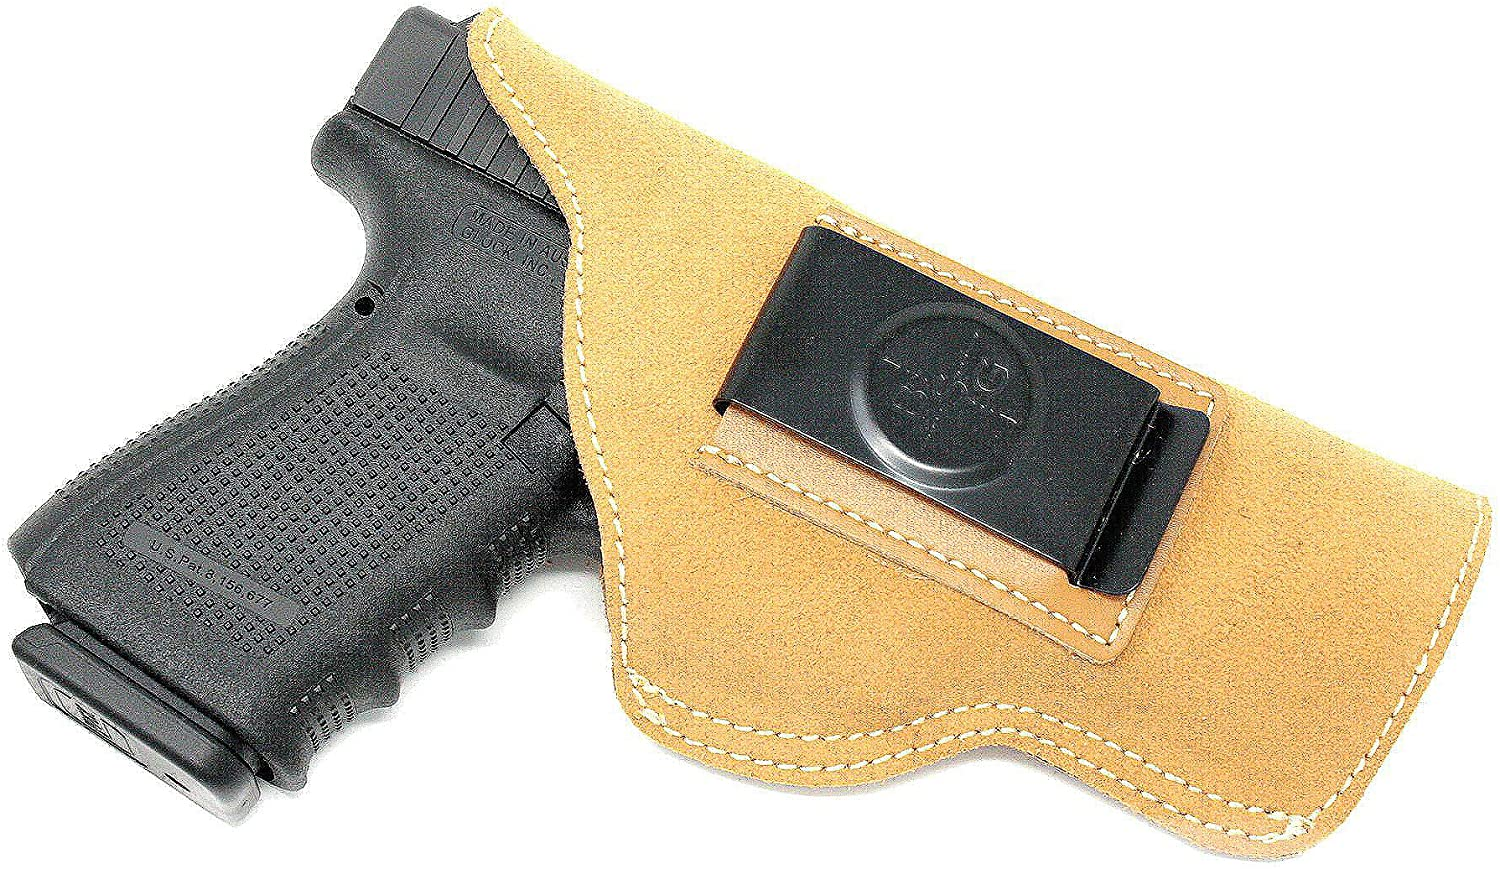 Black Scorpion BSO03LTA Suede Leather IWB Holster-Made USA-Inside Waistband- Fits Glock 42,43/Ruger LC9S/Karl CM9,CW9,PM9,CW380/Diamondback Firearms DB9 /Taurus G2 Millennium-Most .380 Autos